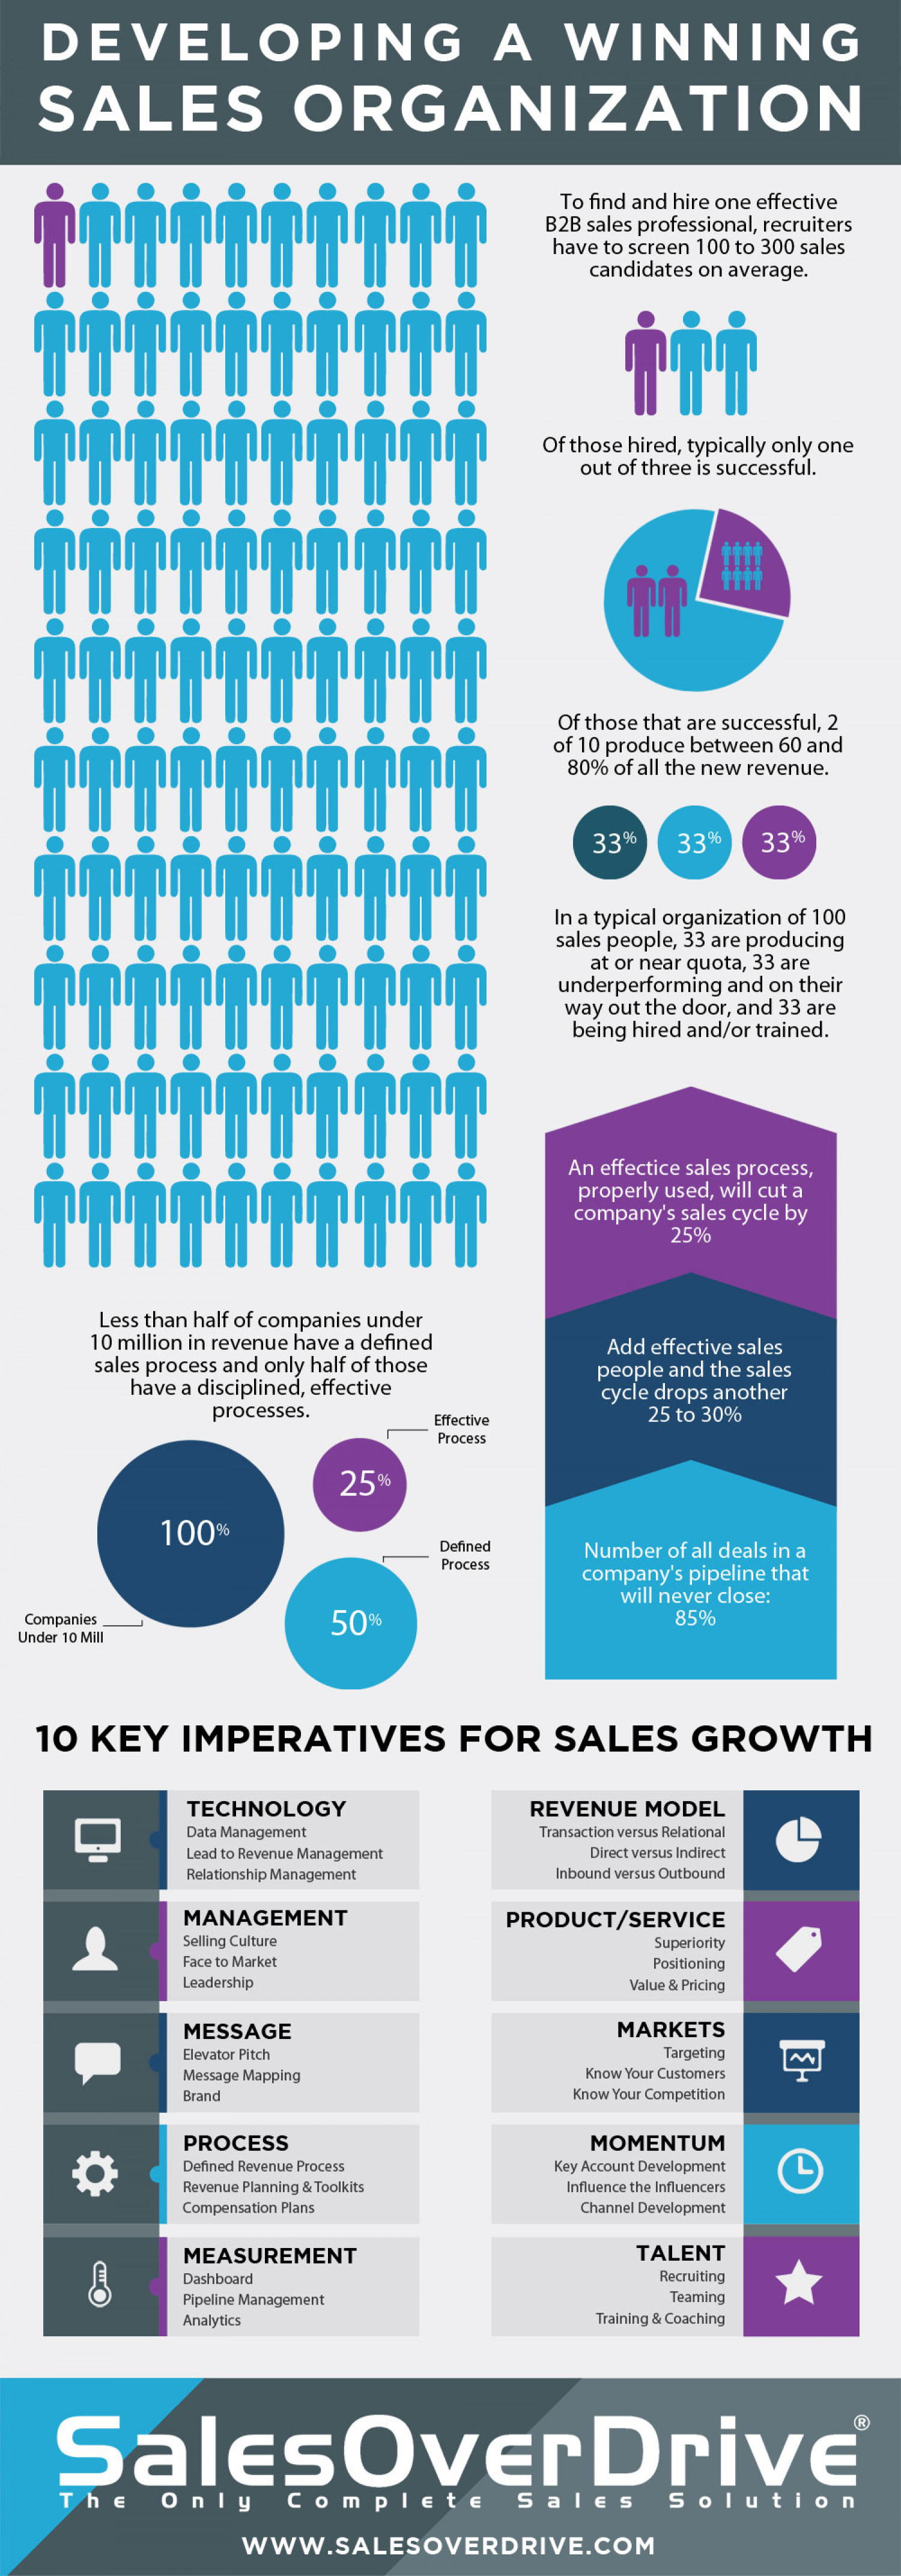 Developing a Winning Sales Organization Infographic